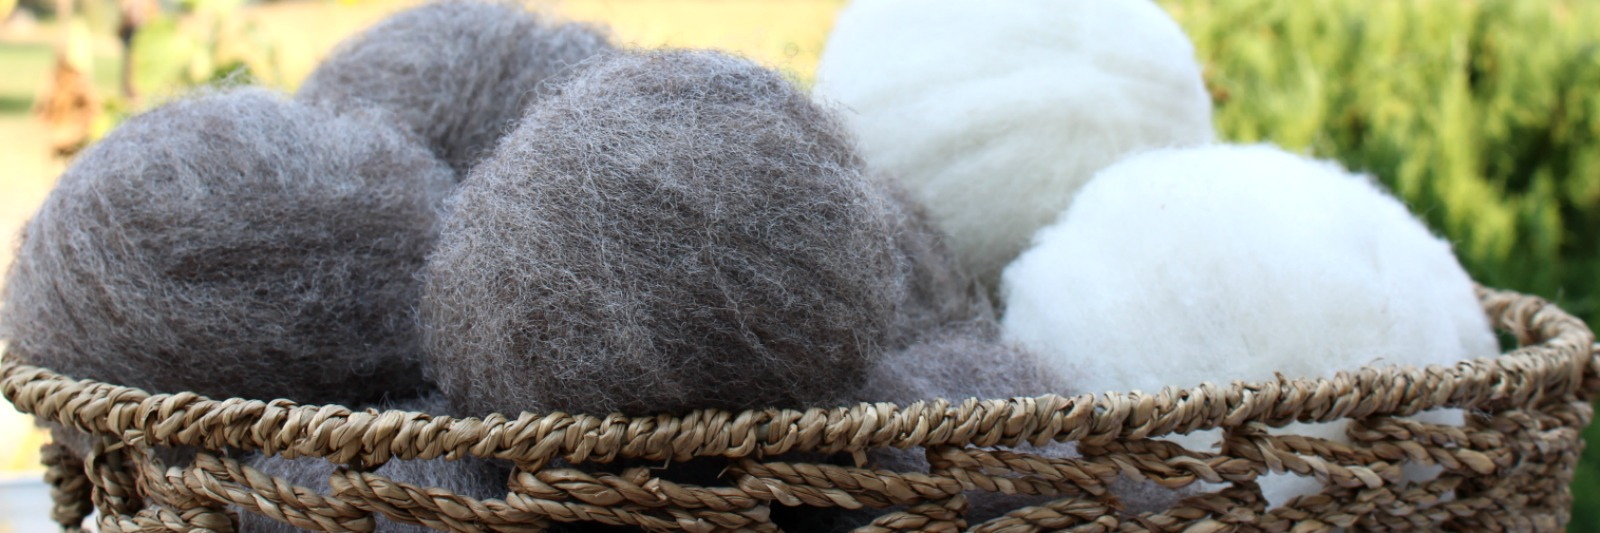 Sweathouse Creek Creations wool dryer balls